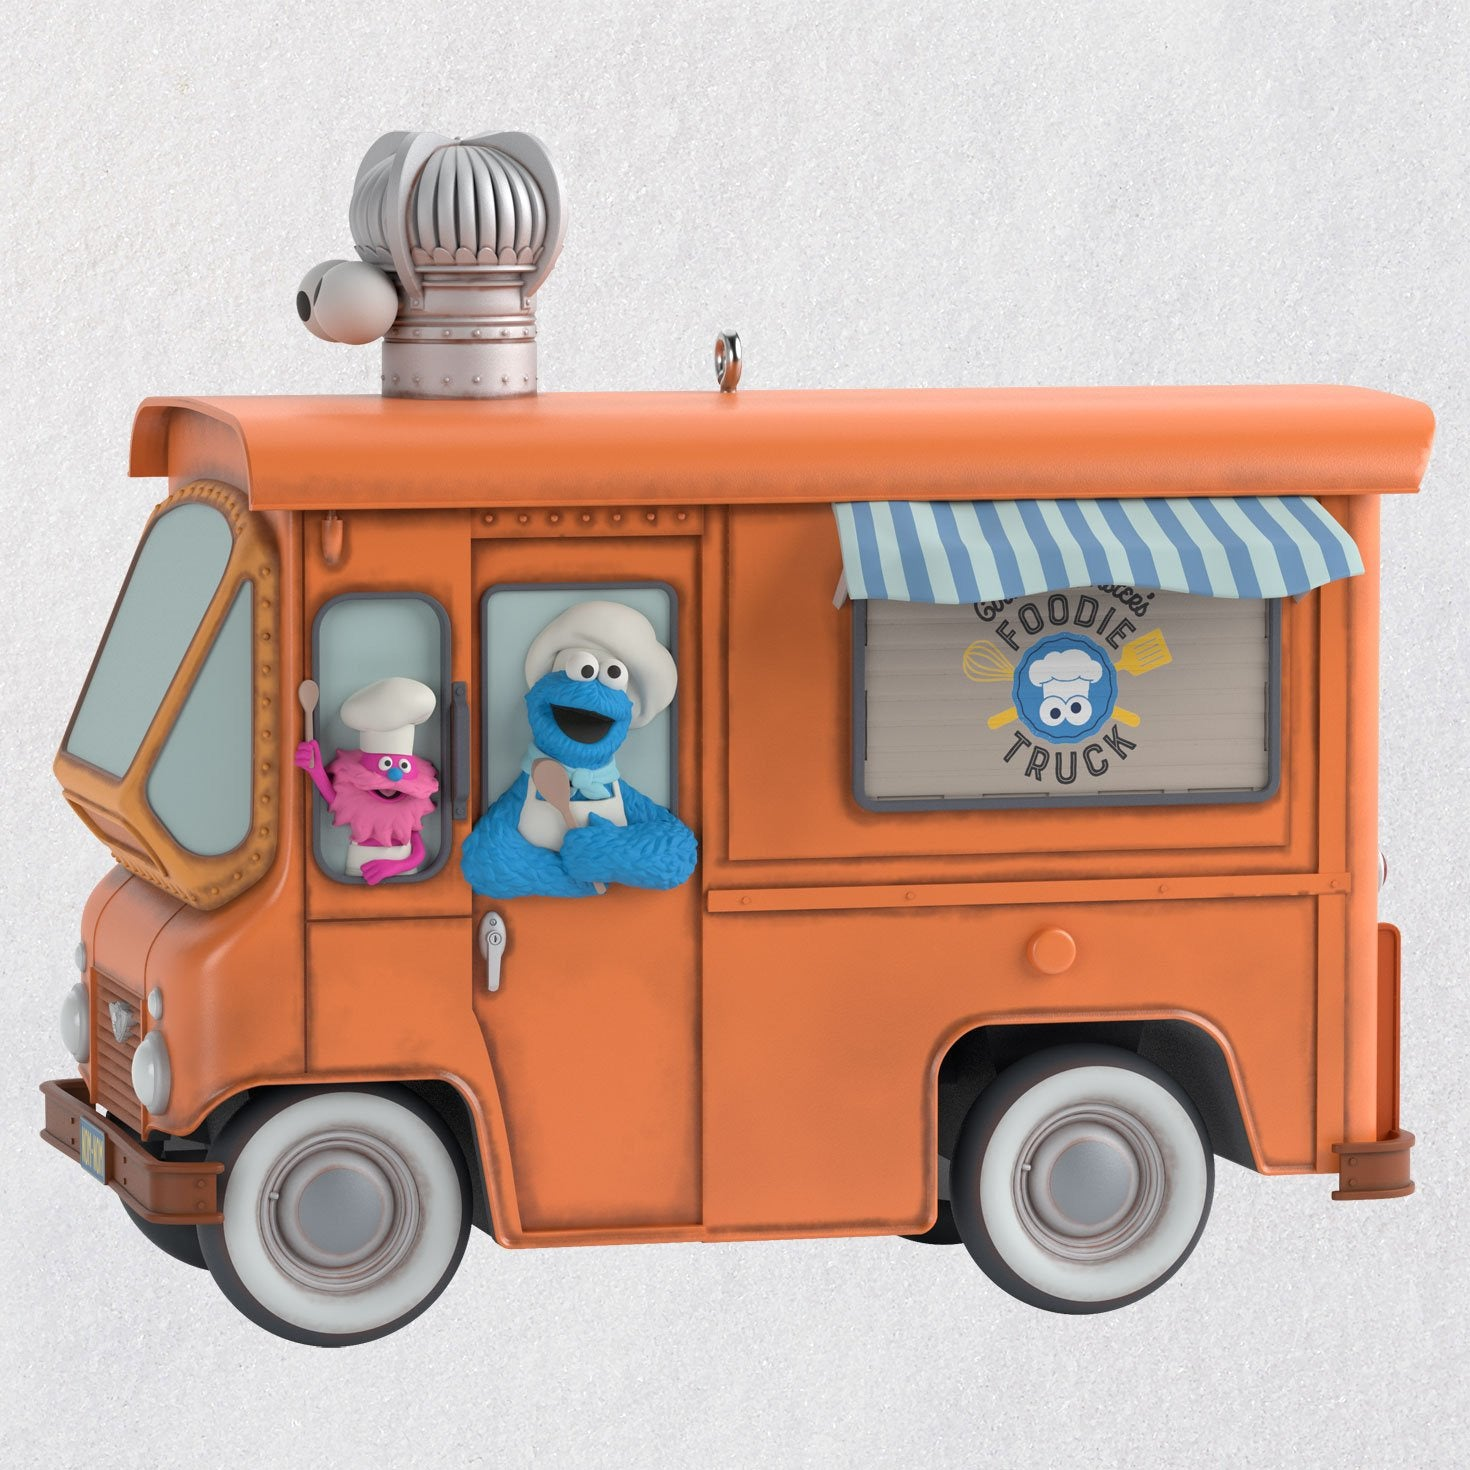 Hallmark Sesame Street® Cookie Monster's Foodie Truck Ornament With Sound